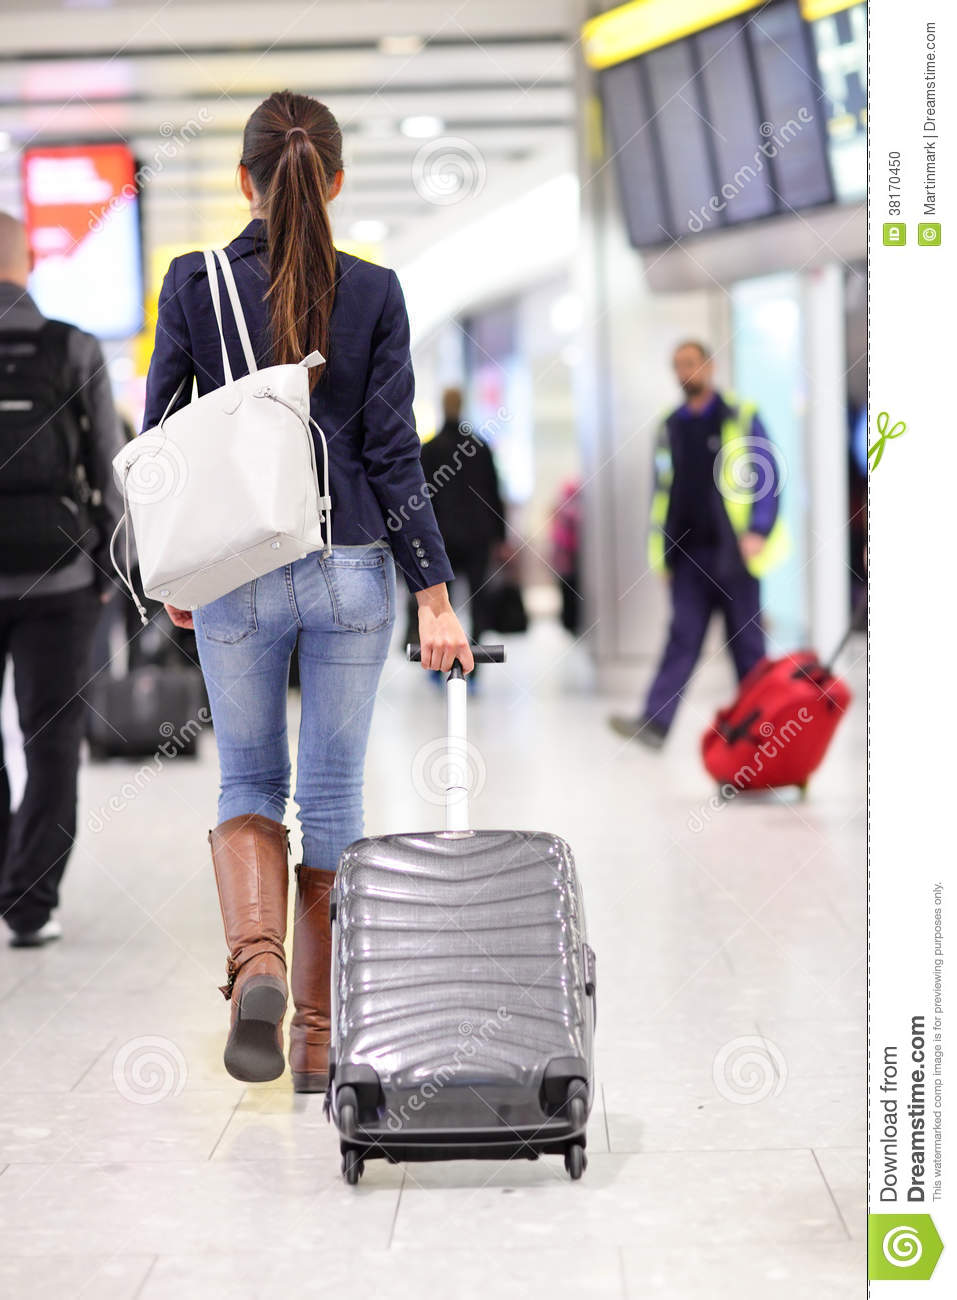 Travel Woman Walking In An Airport With Luggage Stock